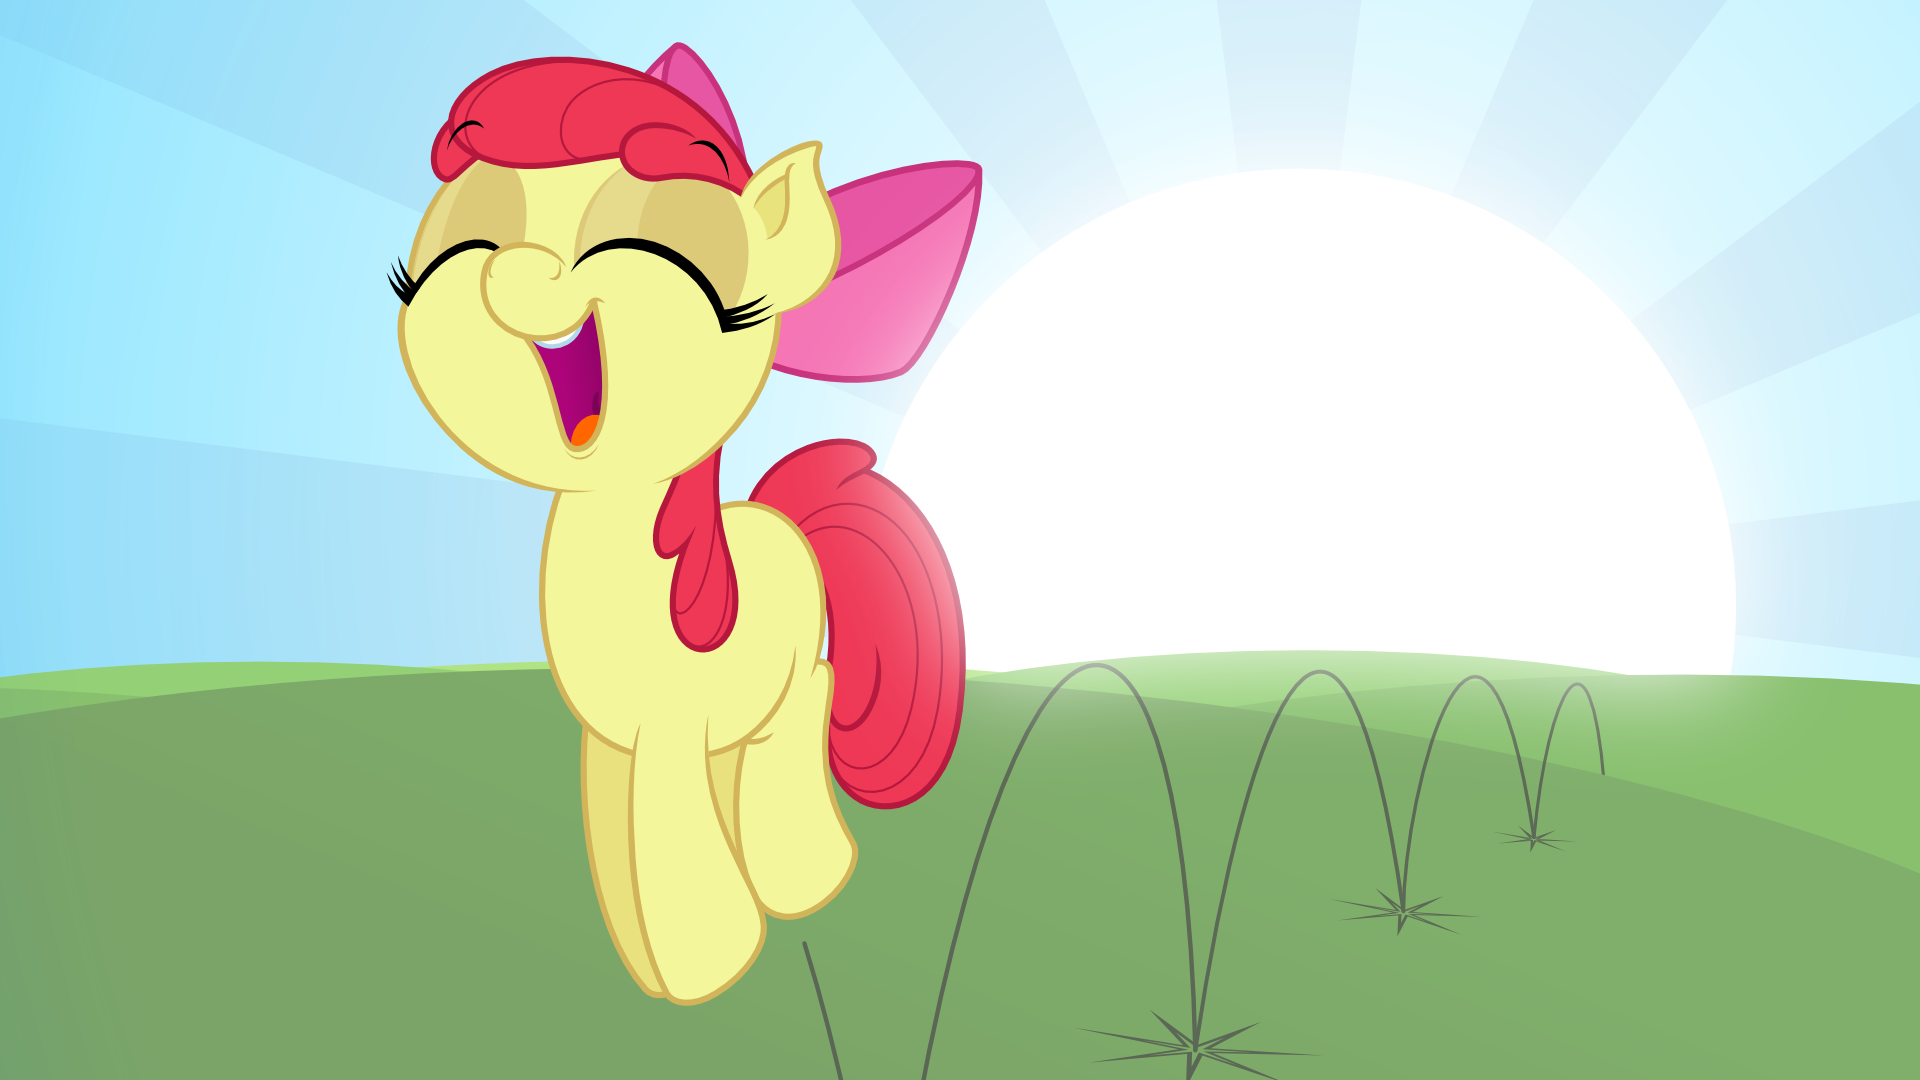 Jumping in the Sunlight